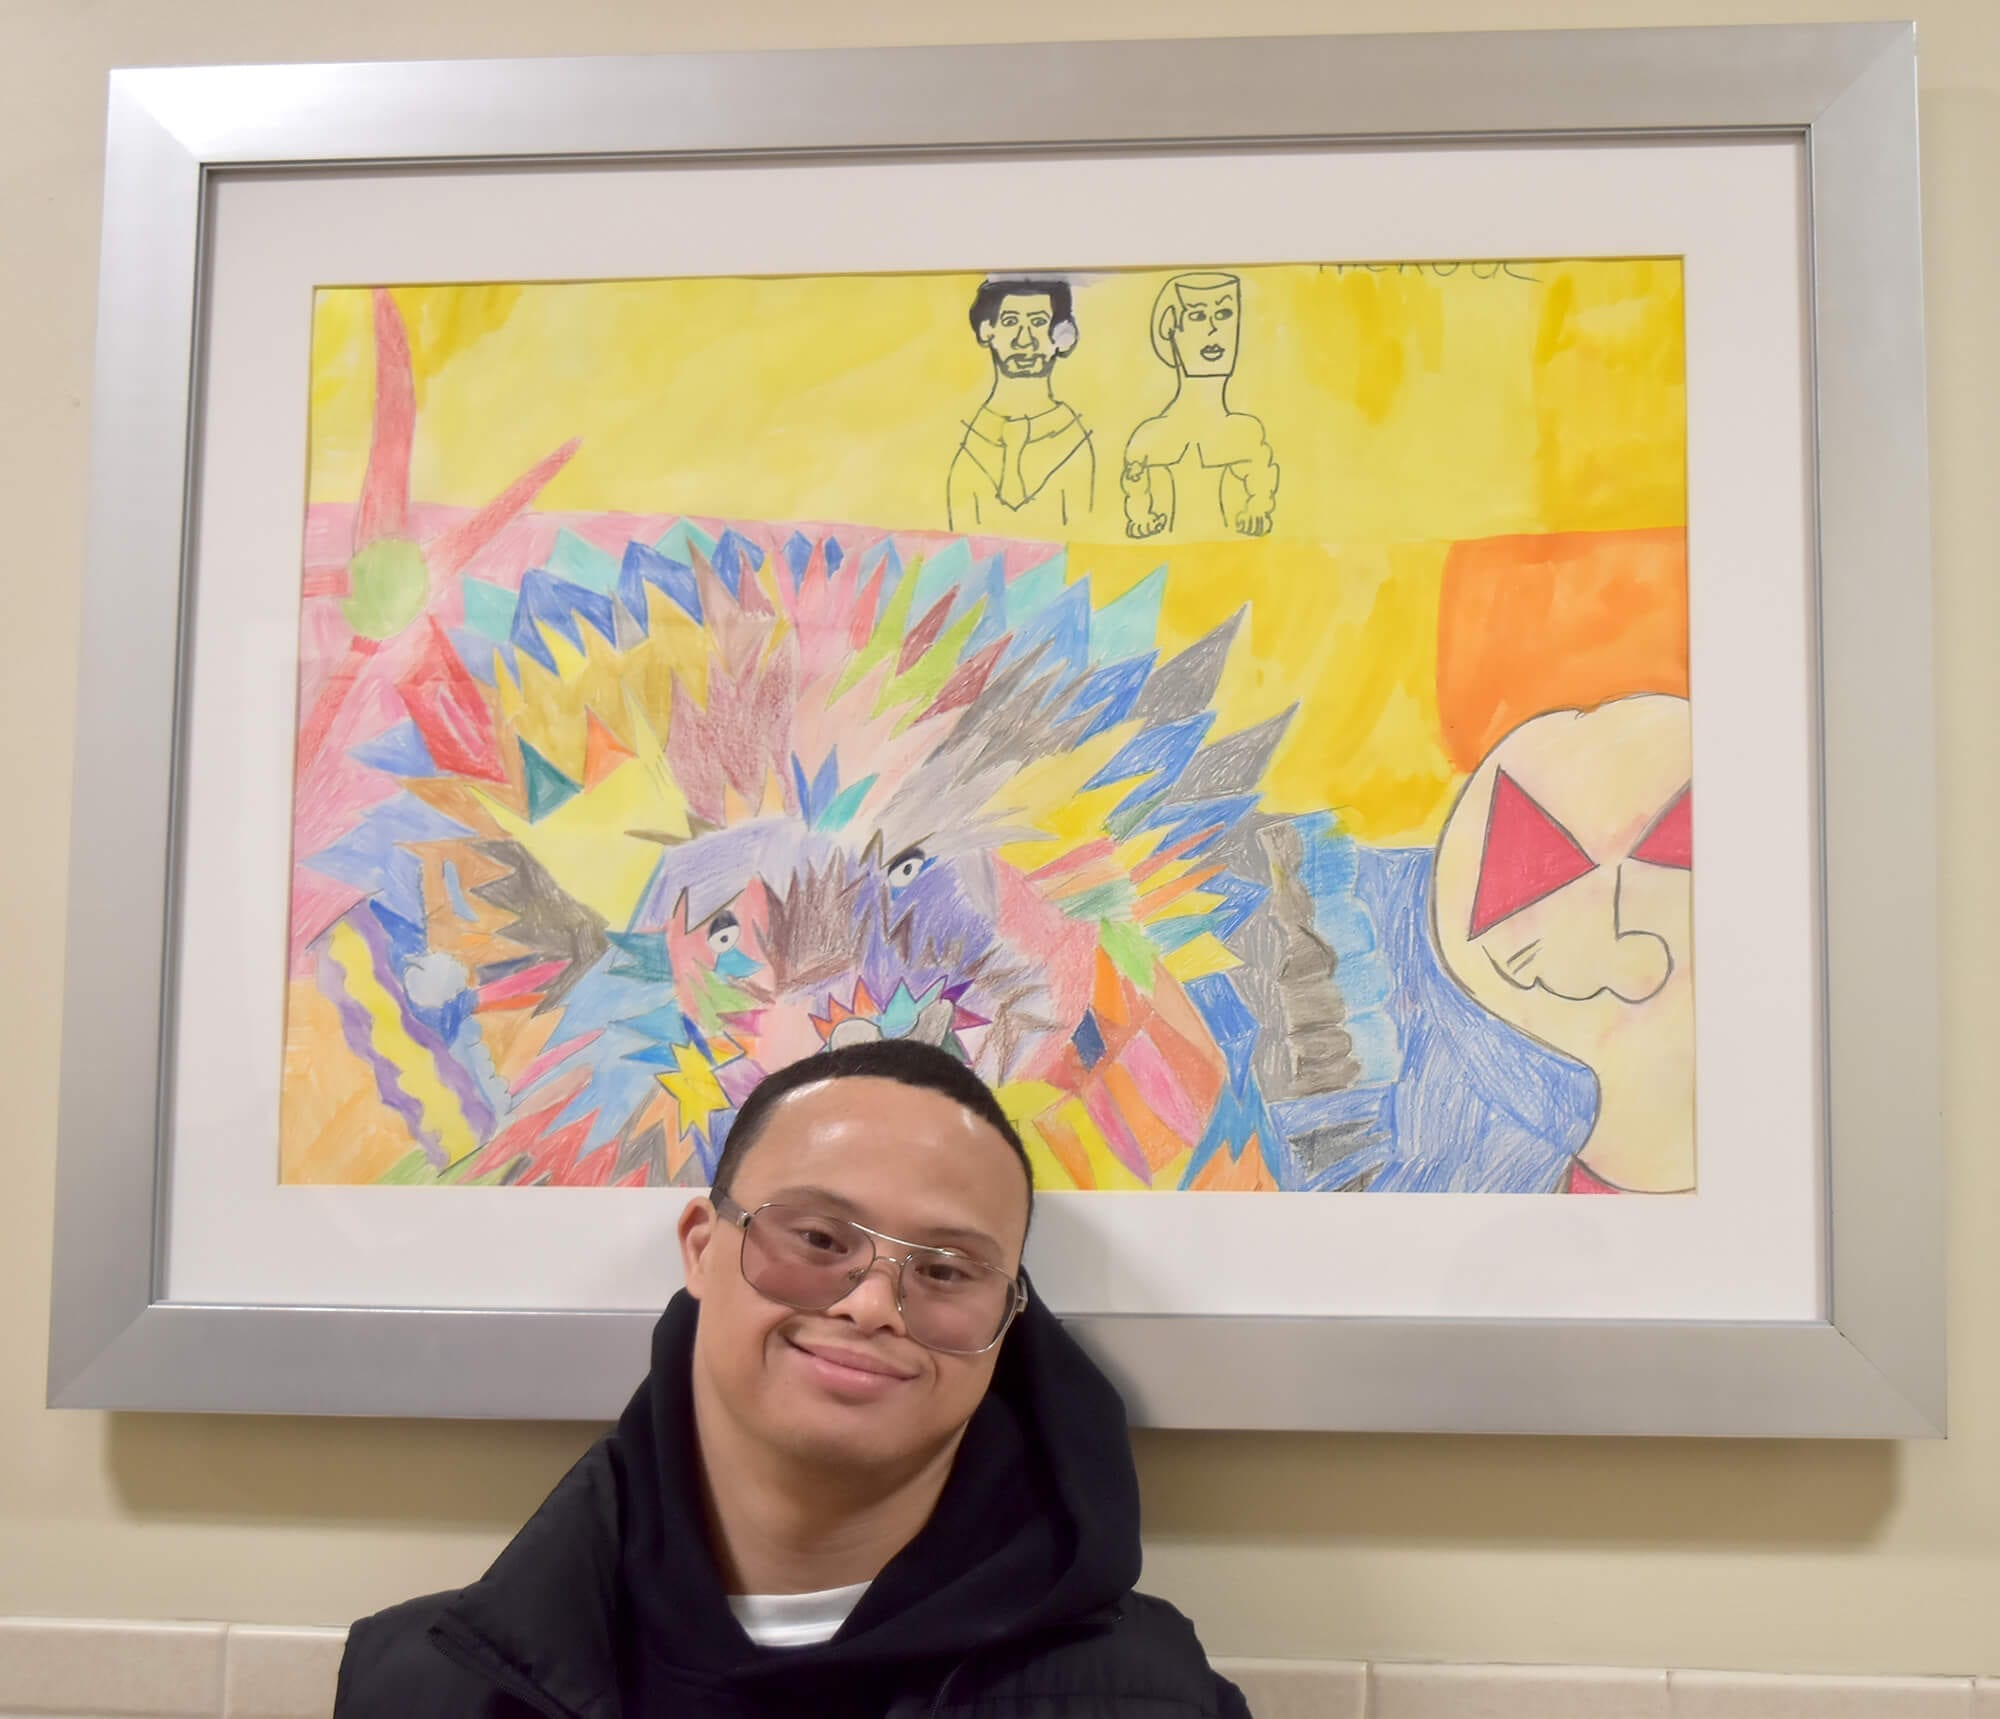 O'Neil Carrasquillo with his piece Untitled